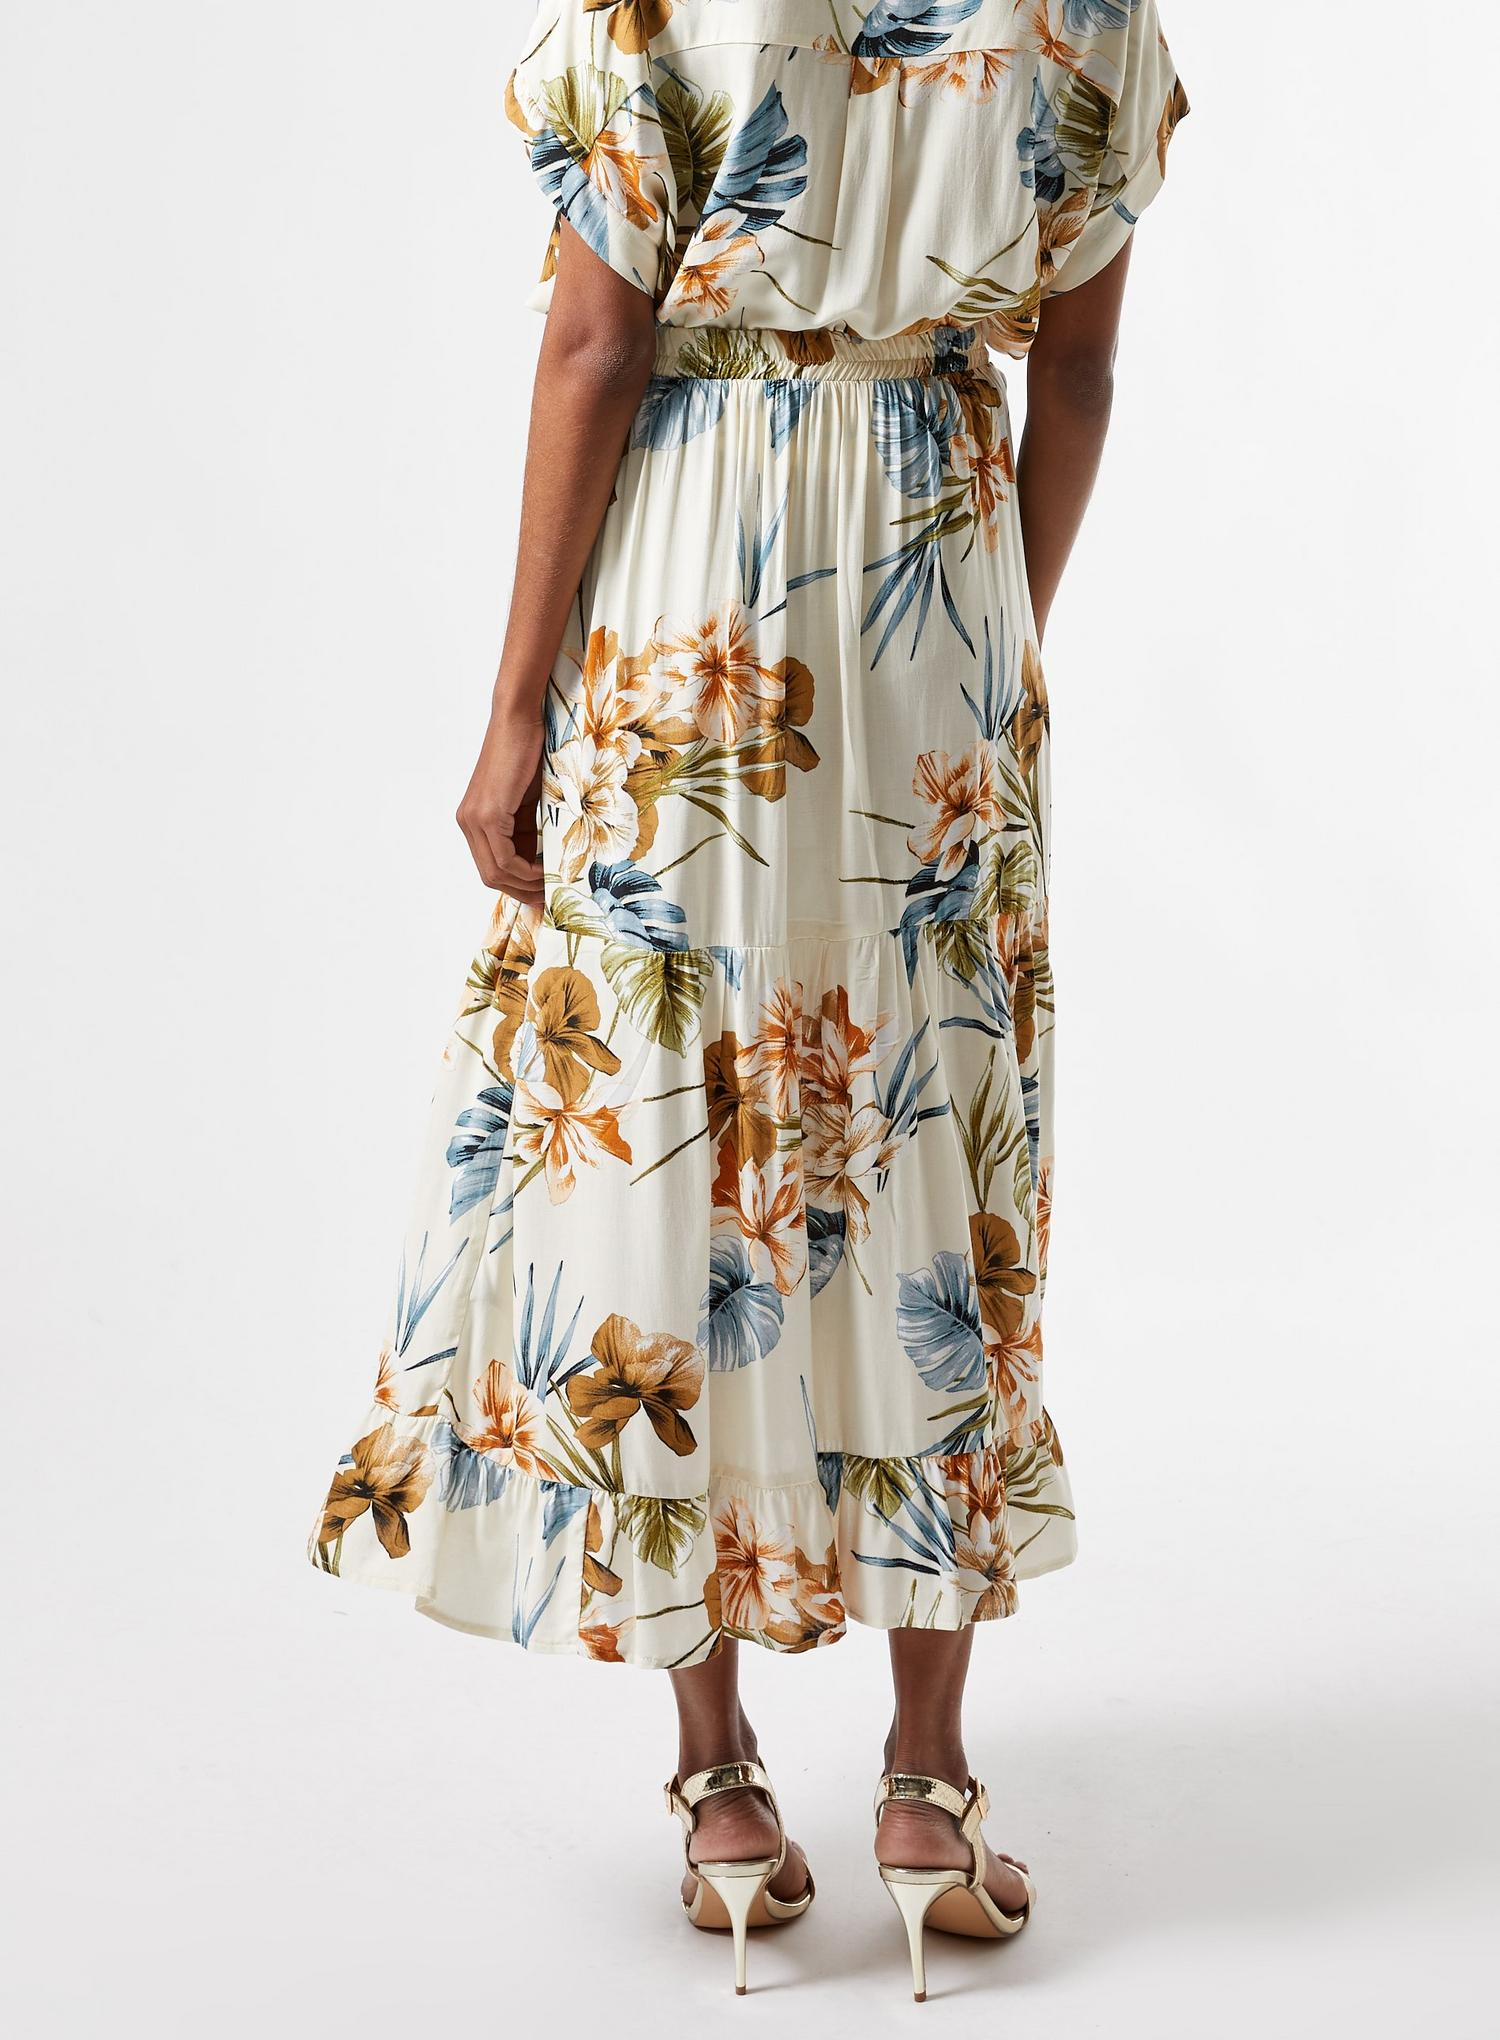 123 Petite Tropical Print Tiered Maxi Skirt image number 4